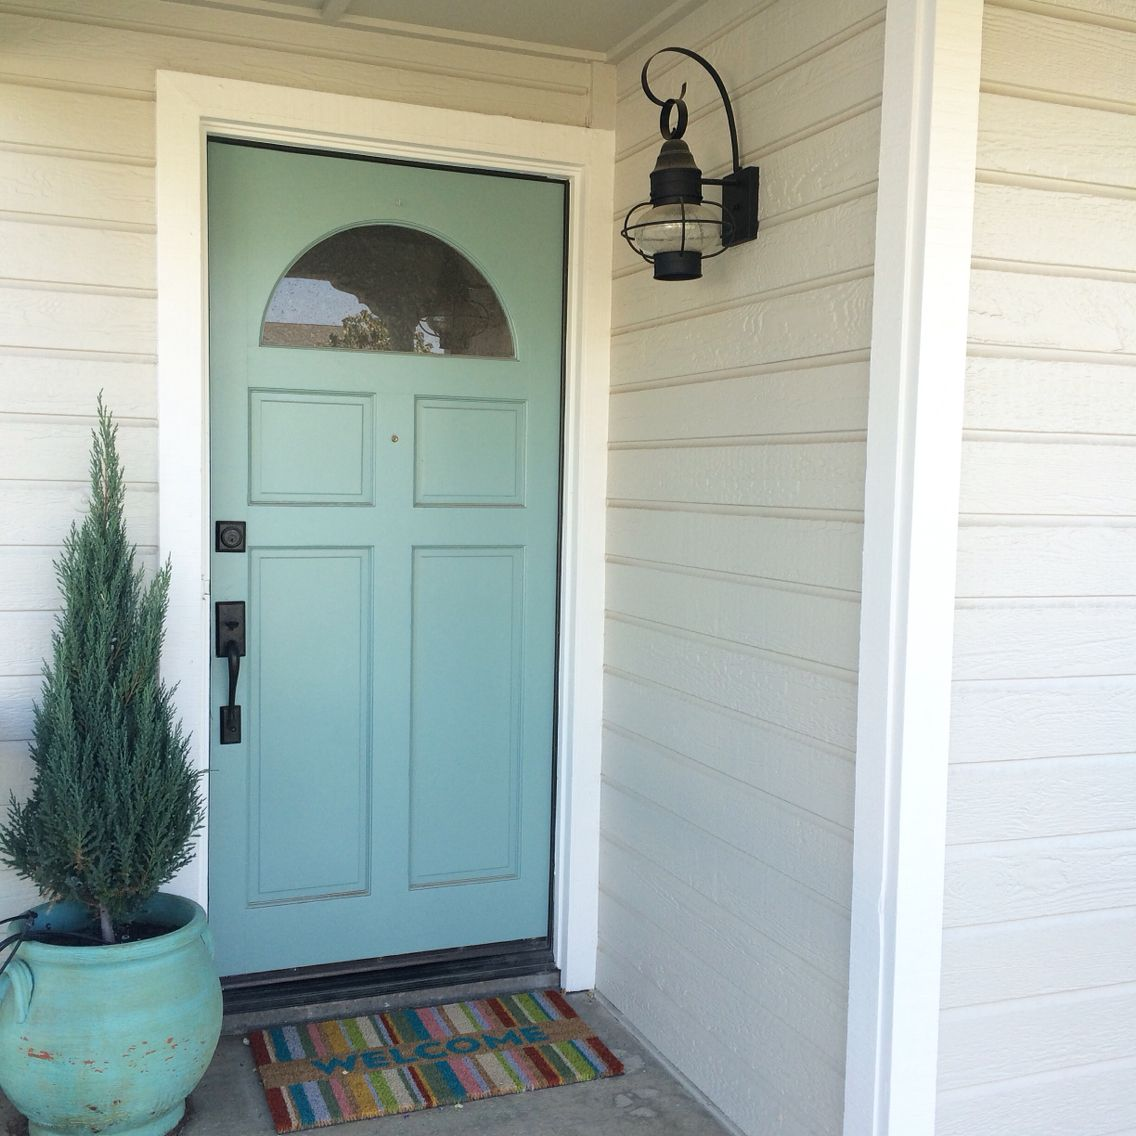 Benjamin Moore Revere Pewter, White Dove (trim), and Grenada Villa ...